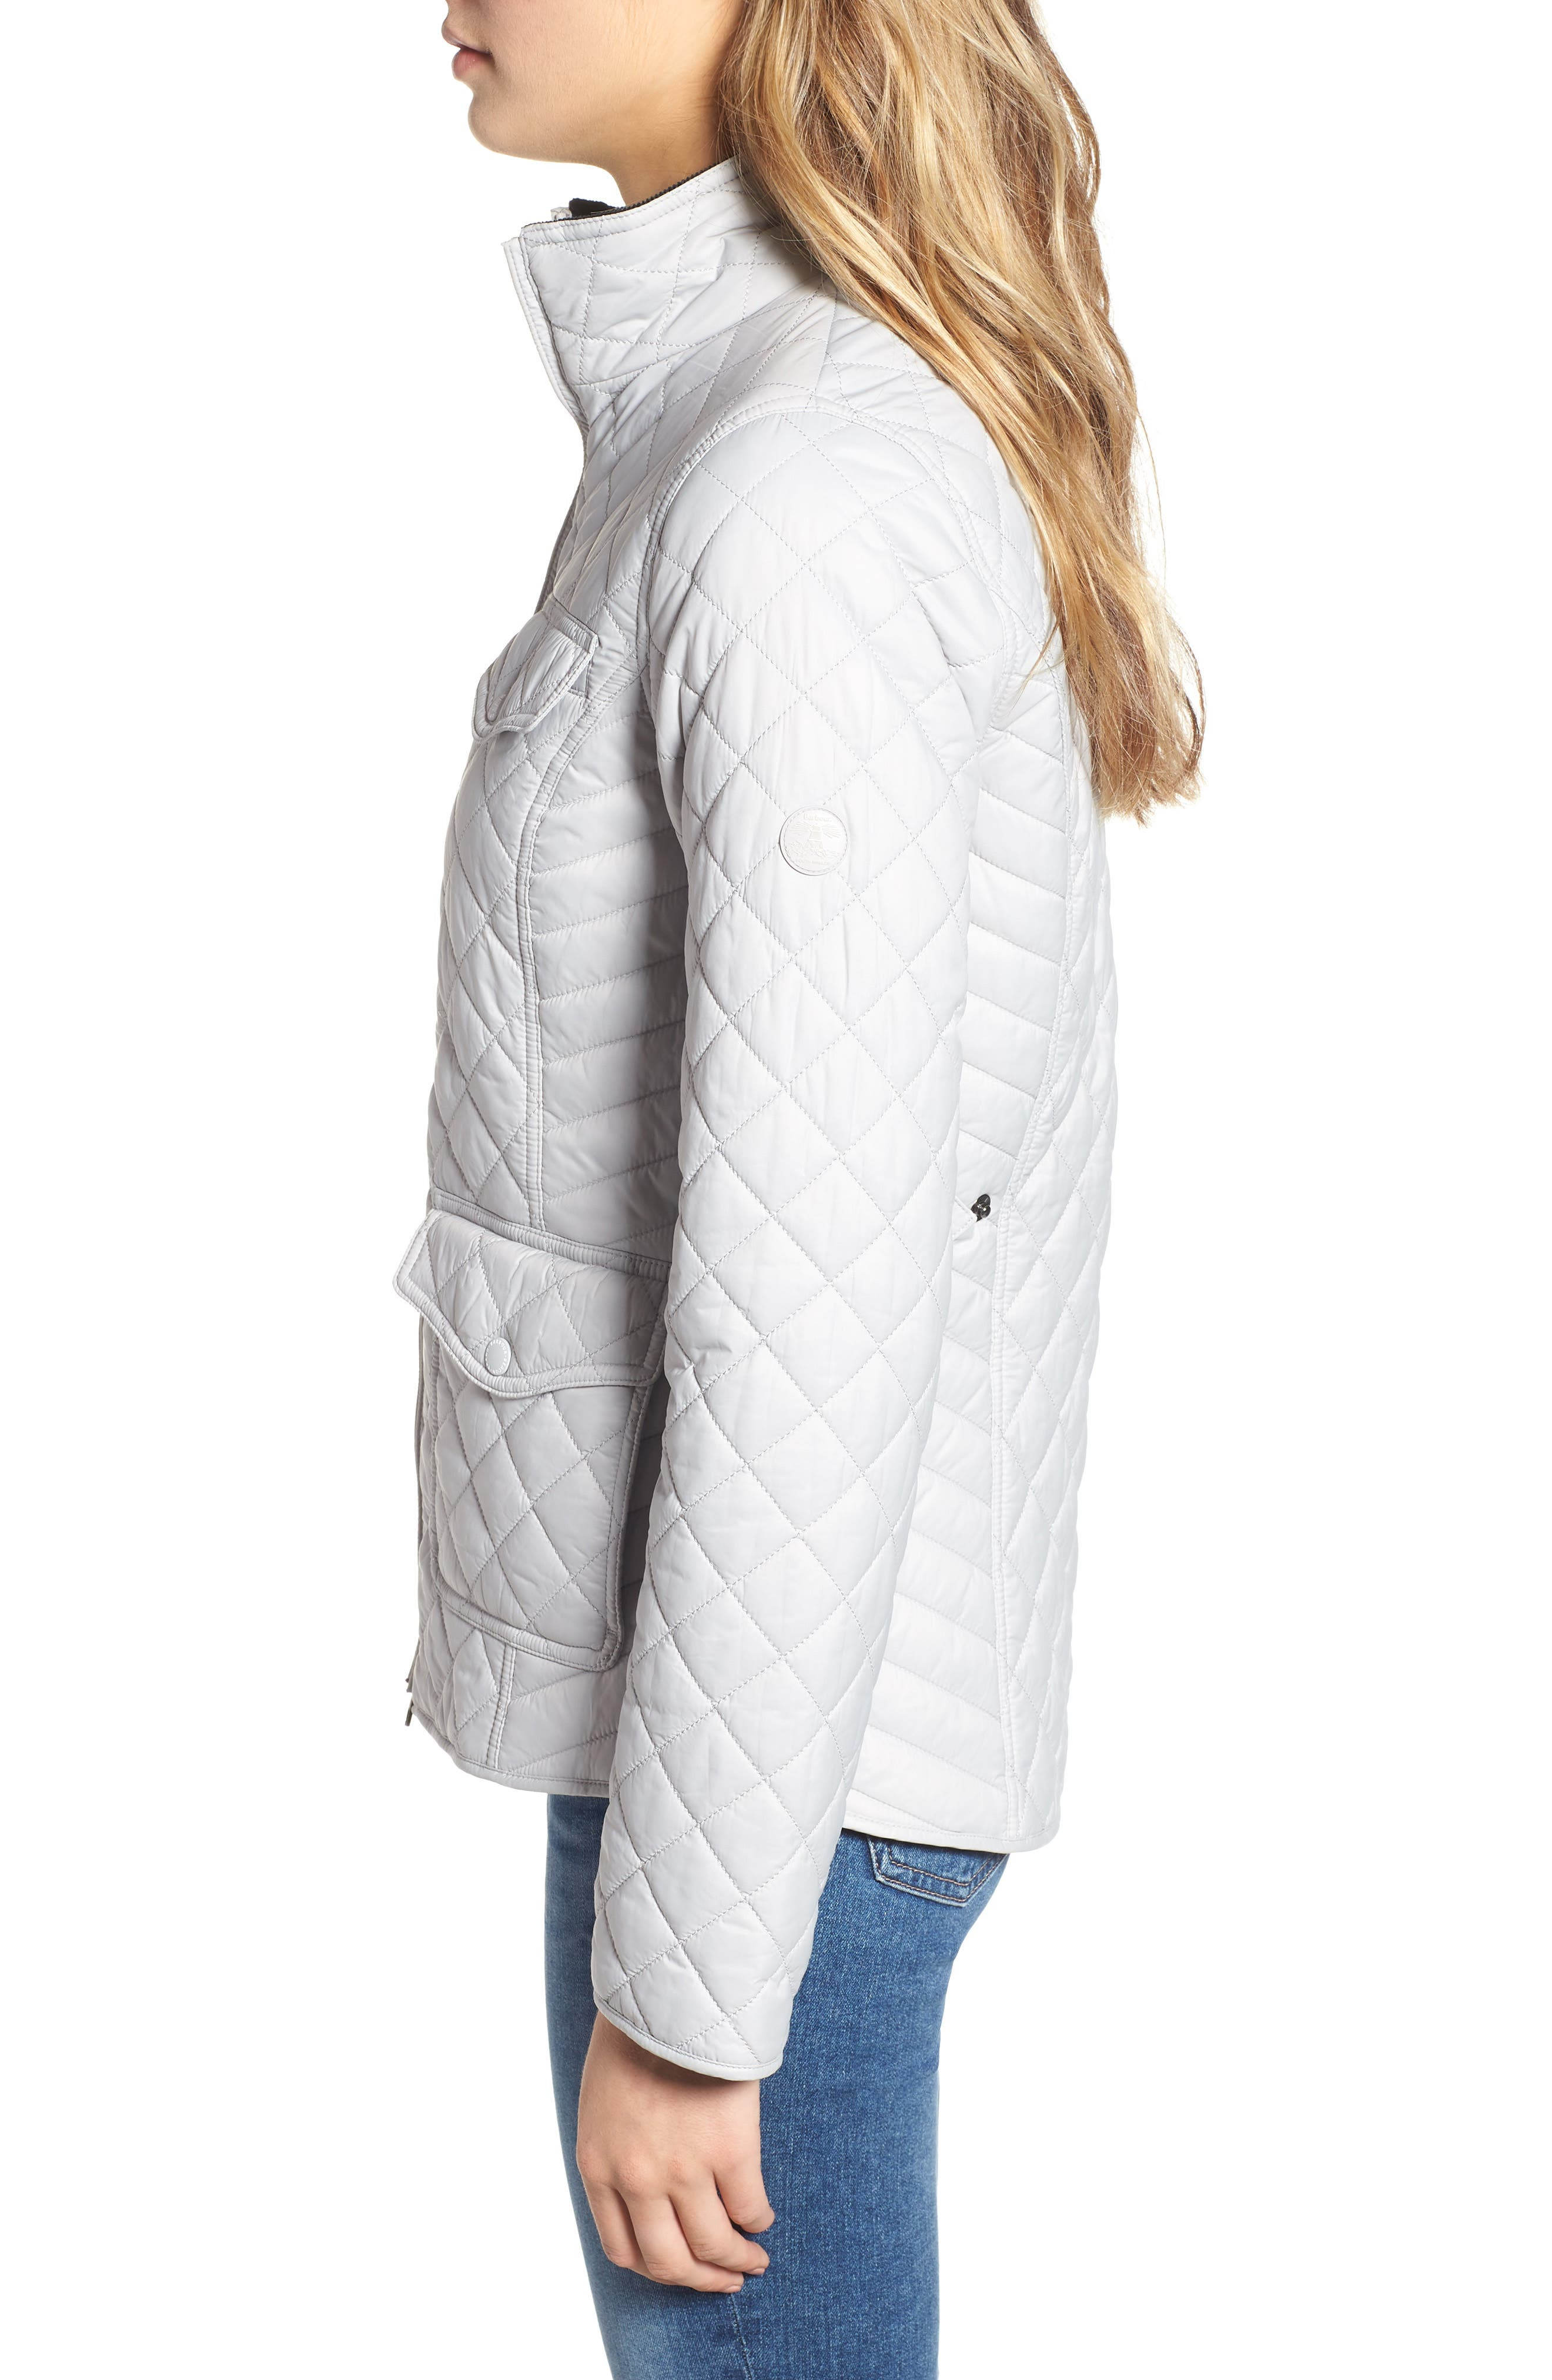 BARBOUR, Sailboat Quilted Jacket, Alternate thumbnail 4, color, 100